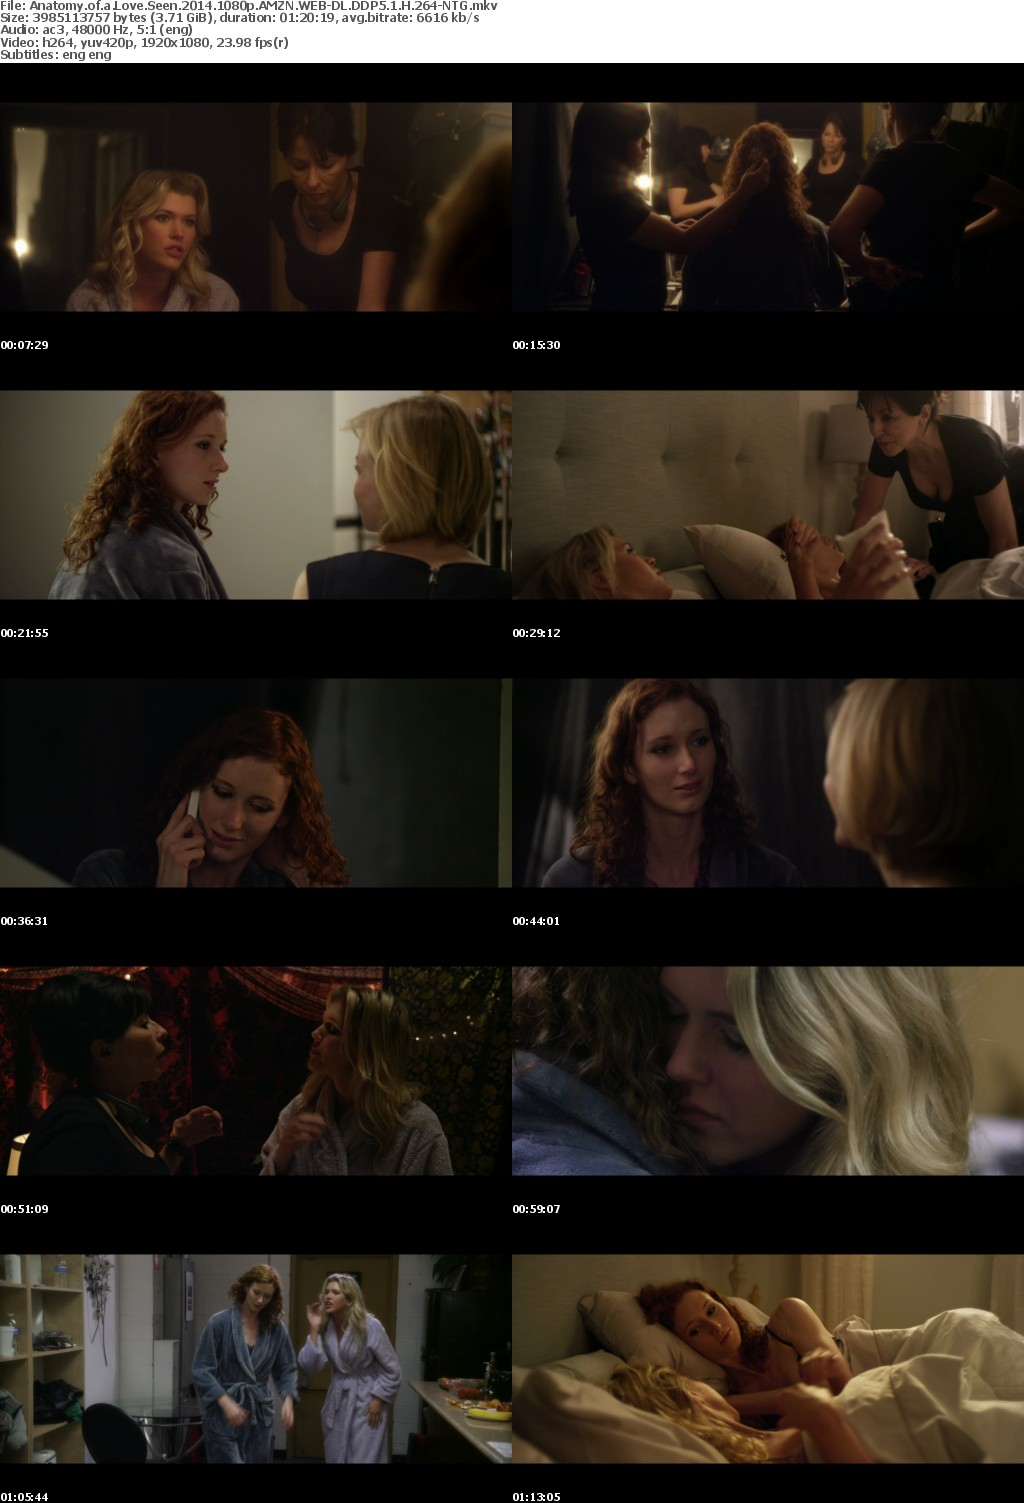 Anatomy of a Love Seen (2014) 1080p AMZN WEBRip DDP5.1 x264-NTG